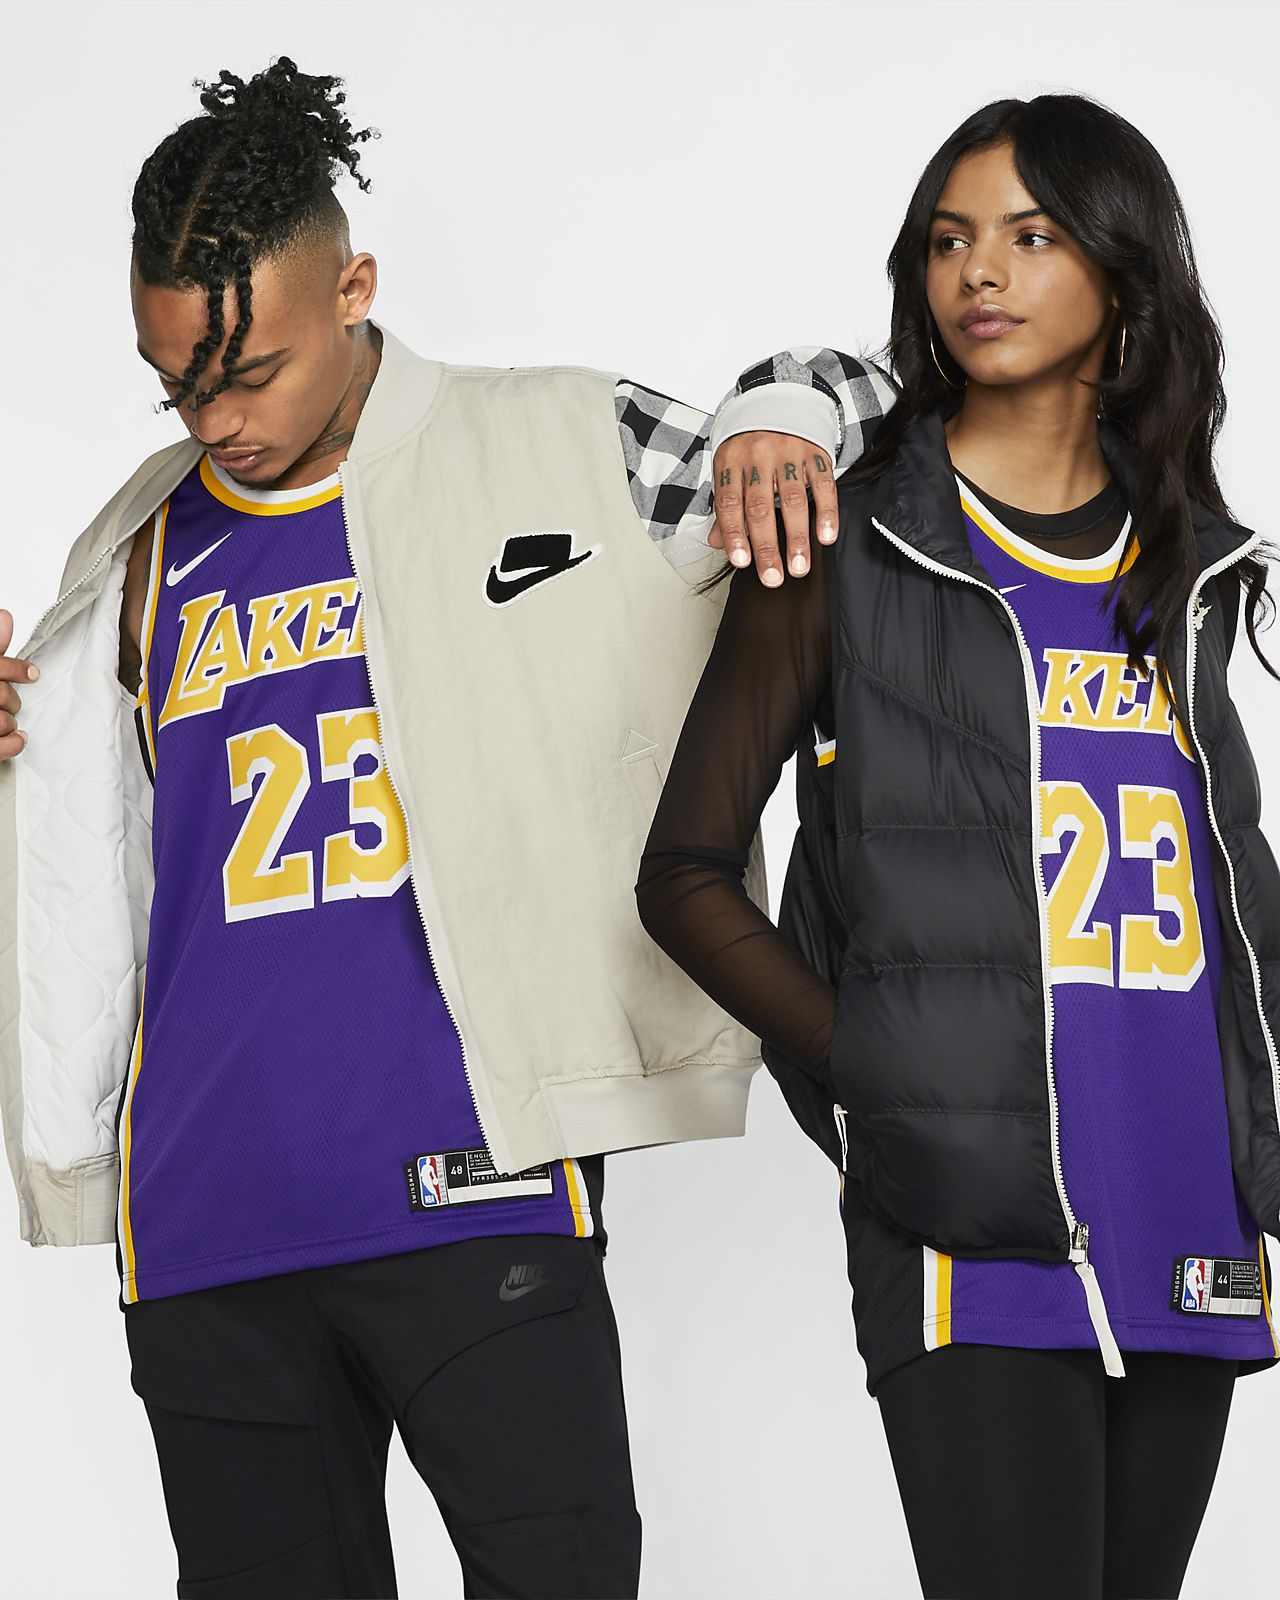 8ae3a39071d Men s Nike NBA Connected Jersey. LeBron James Statement Edition Swingman (Los  Angeles Lakers)